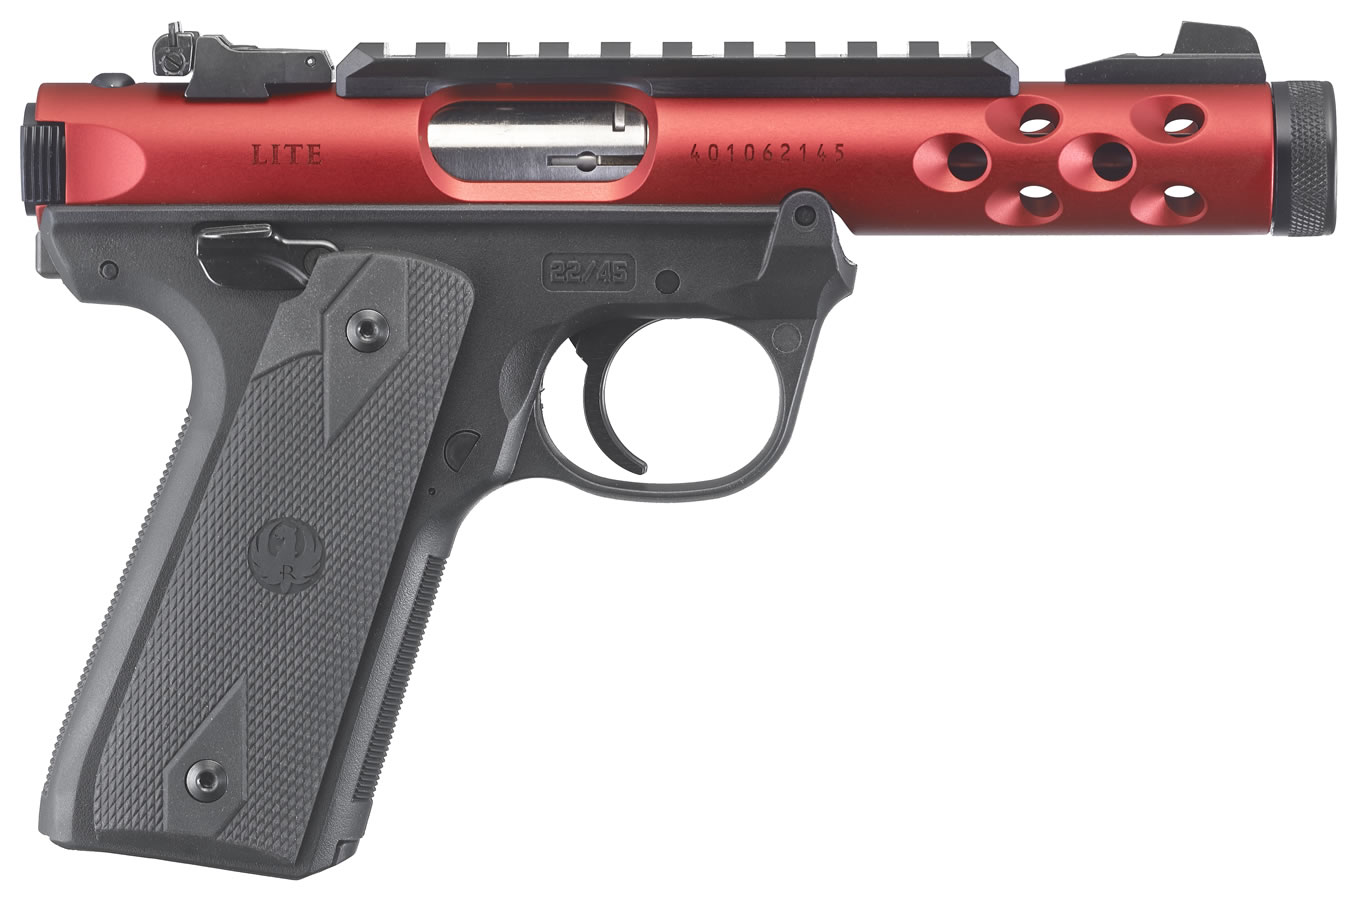 No. 16 Best Selling: RUGER MARK IV 22/45 LITE 22LR RED ANODIZED